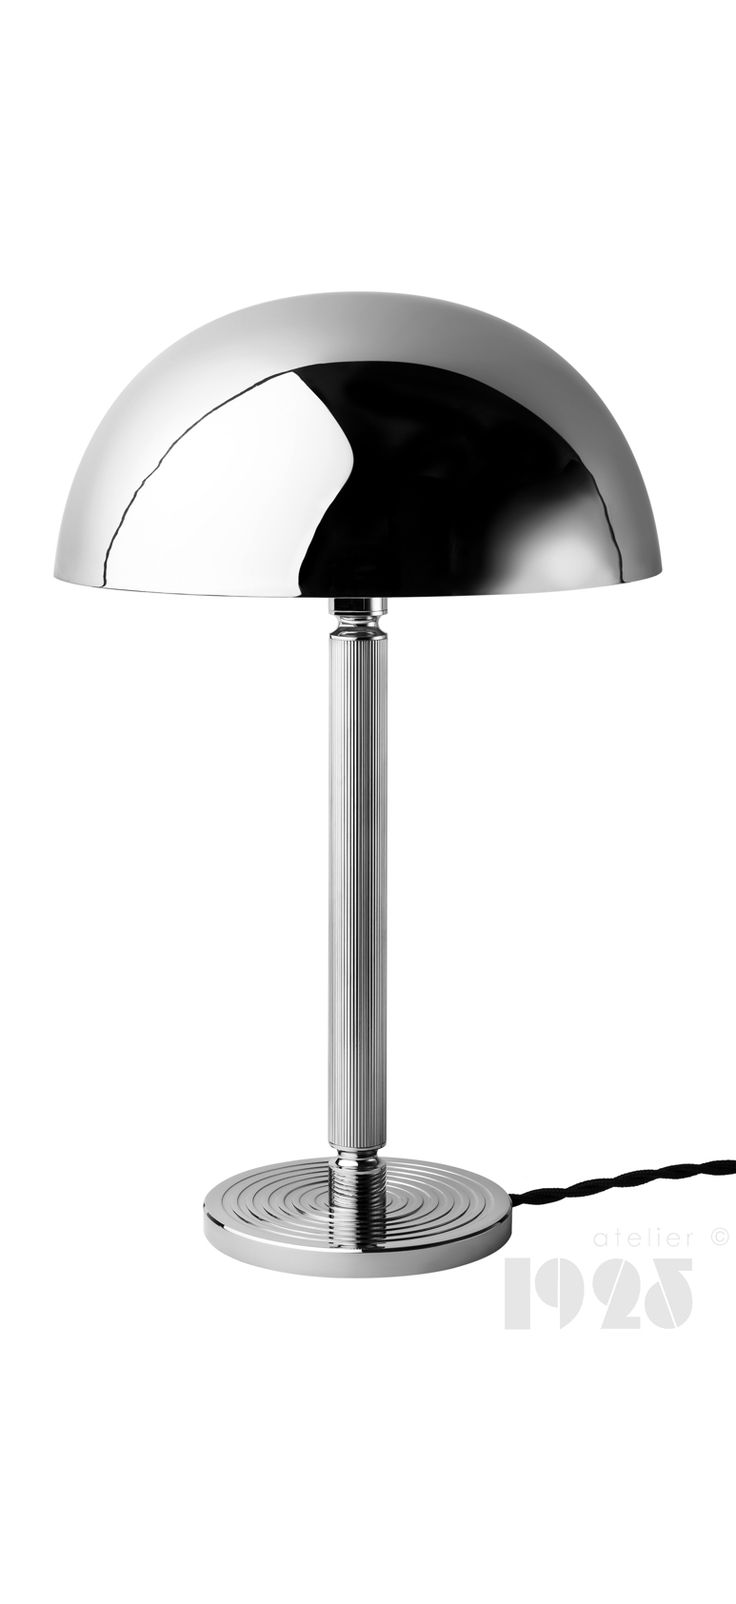 26 best art deco inspired lamps by atelier 1925 images on atelier 1925 art deco style table lamp lb exclusive modern design by atelier 1925 mozeypictures Image collections